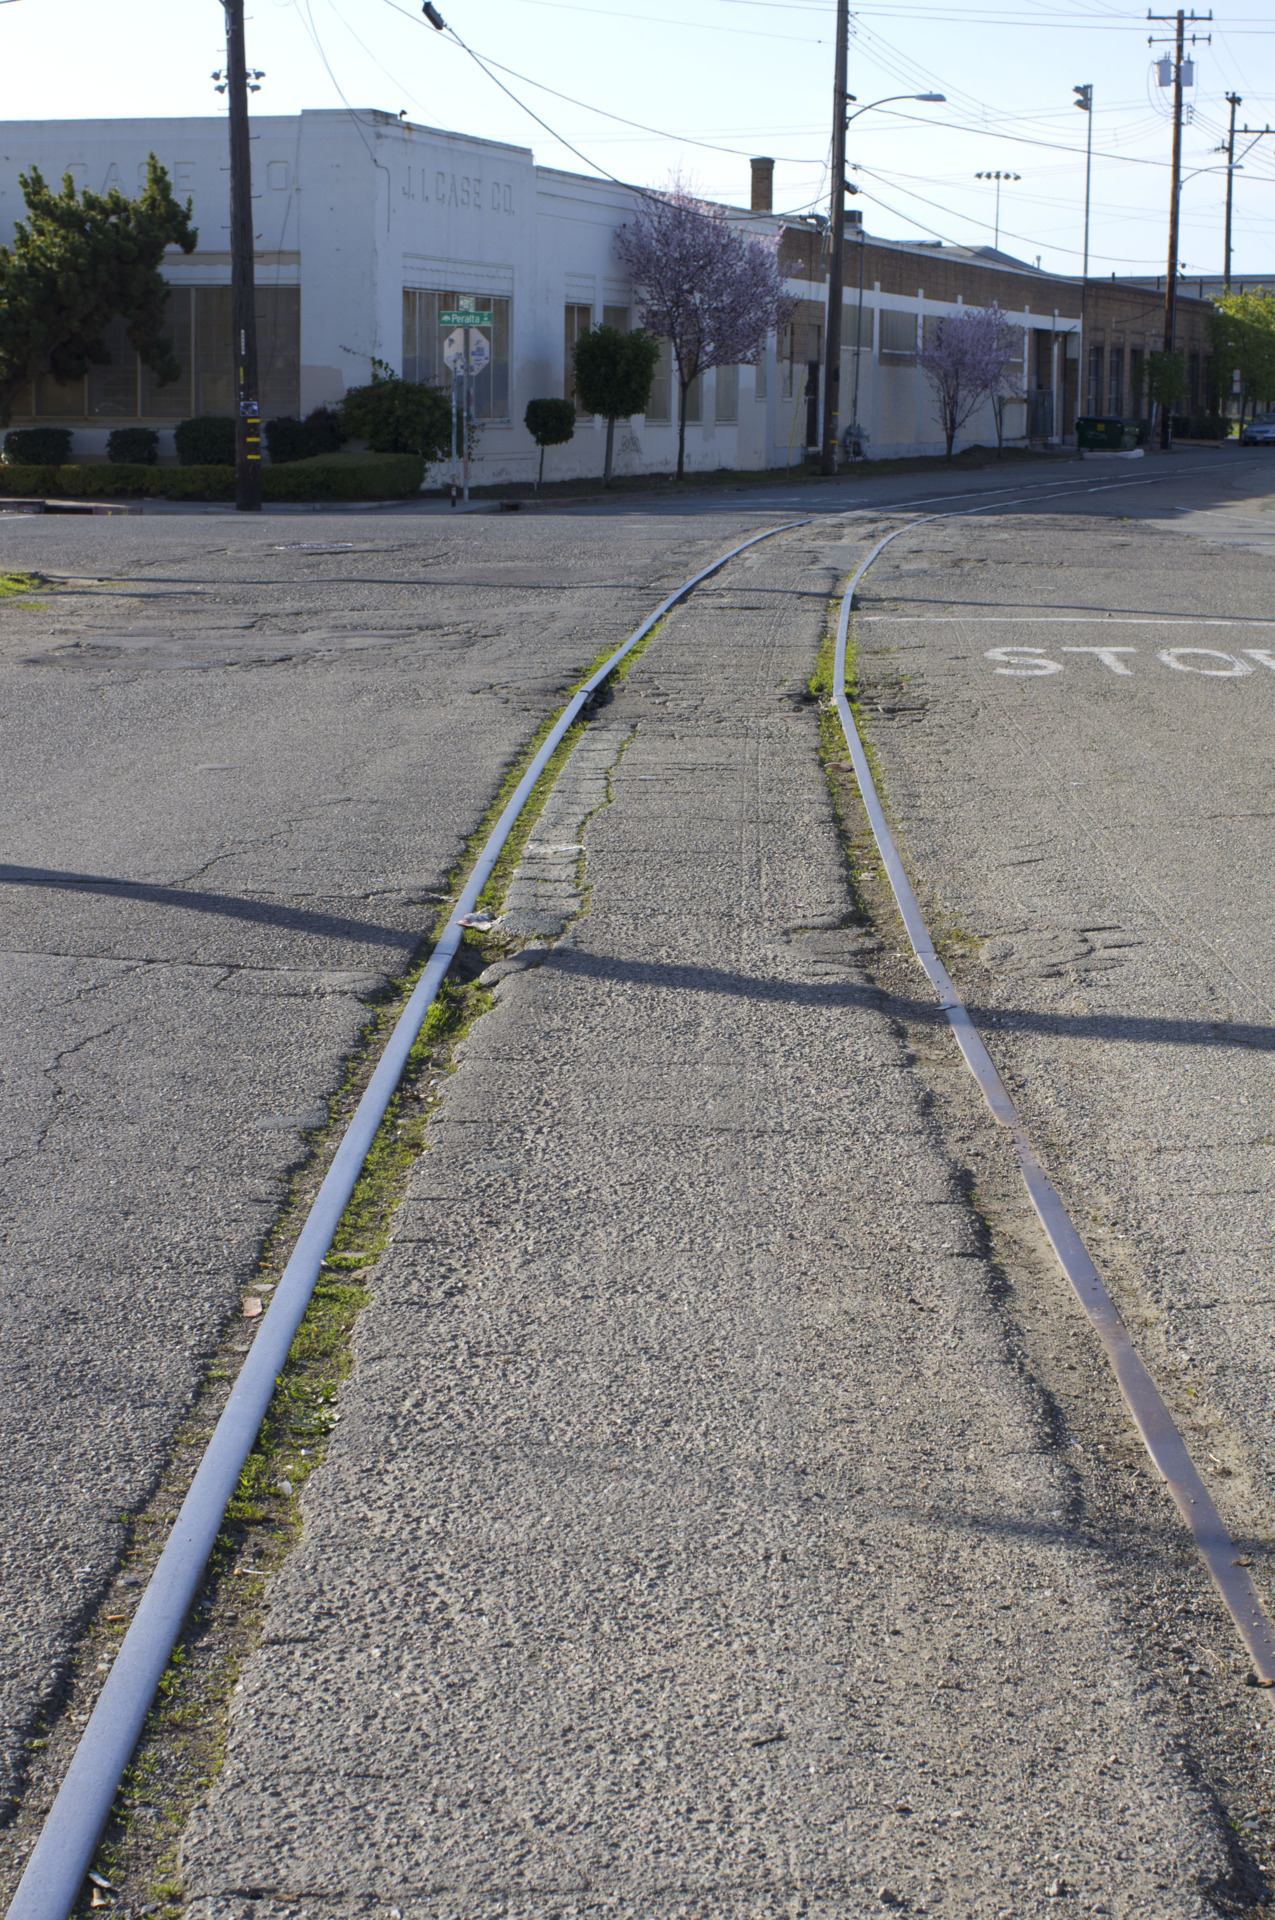 I went looking for train tracks and highways yesterday in West Oakland with two friends. We found some.